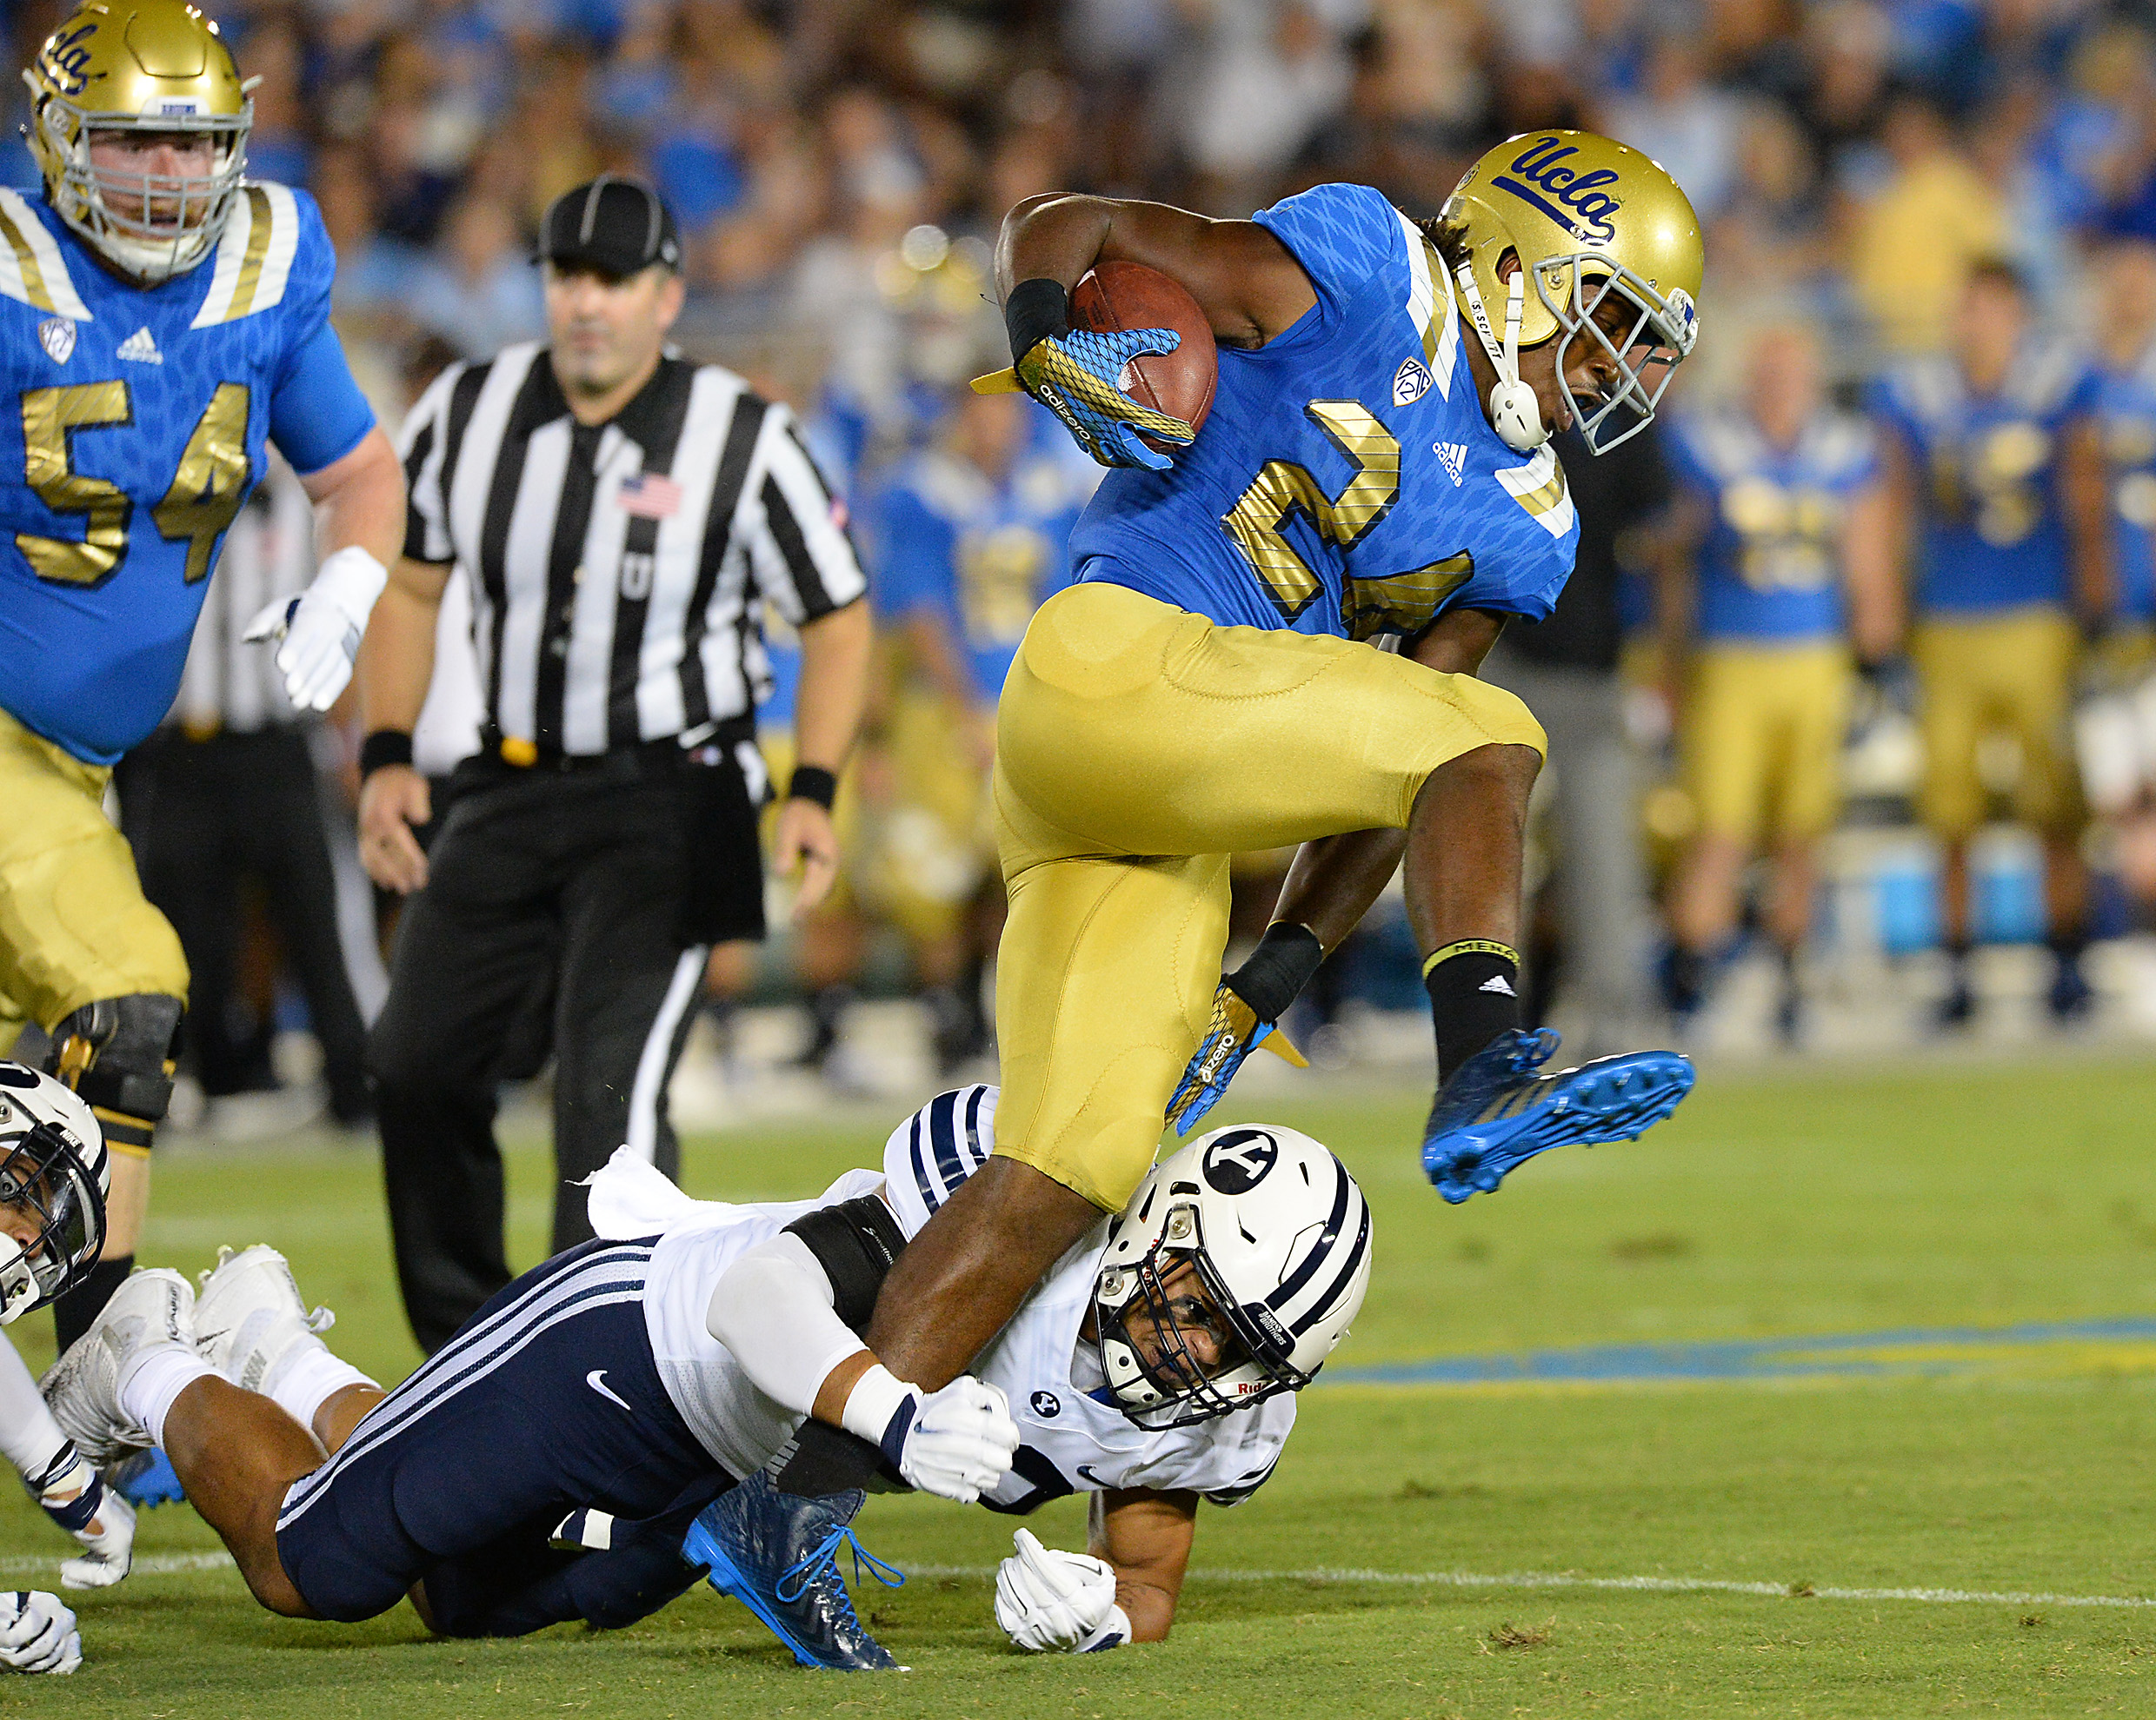 Wouldn't mind seeing more carries for Paul Perkins in the 2nd half.